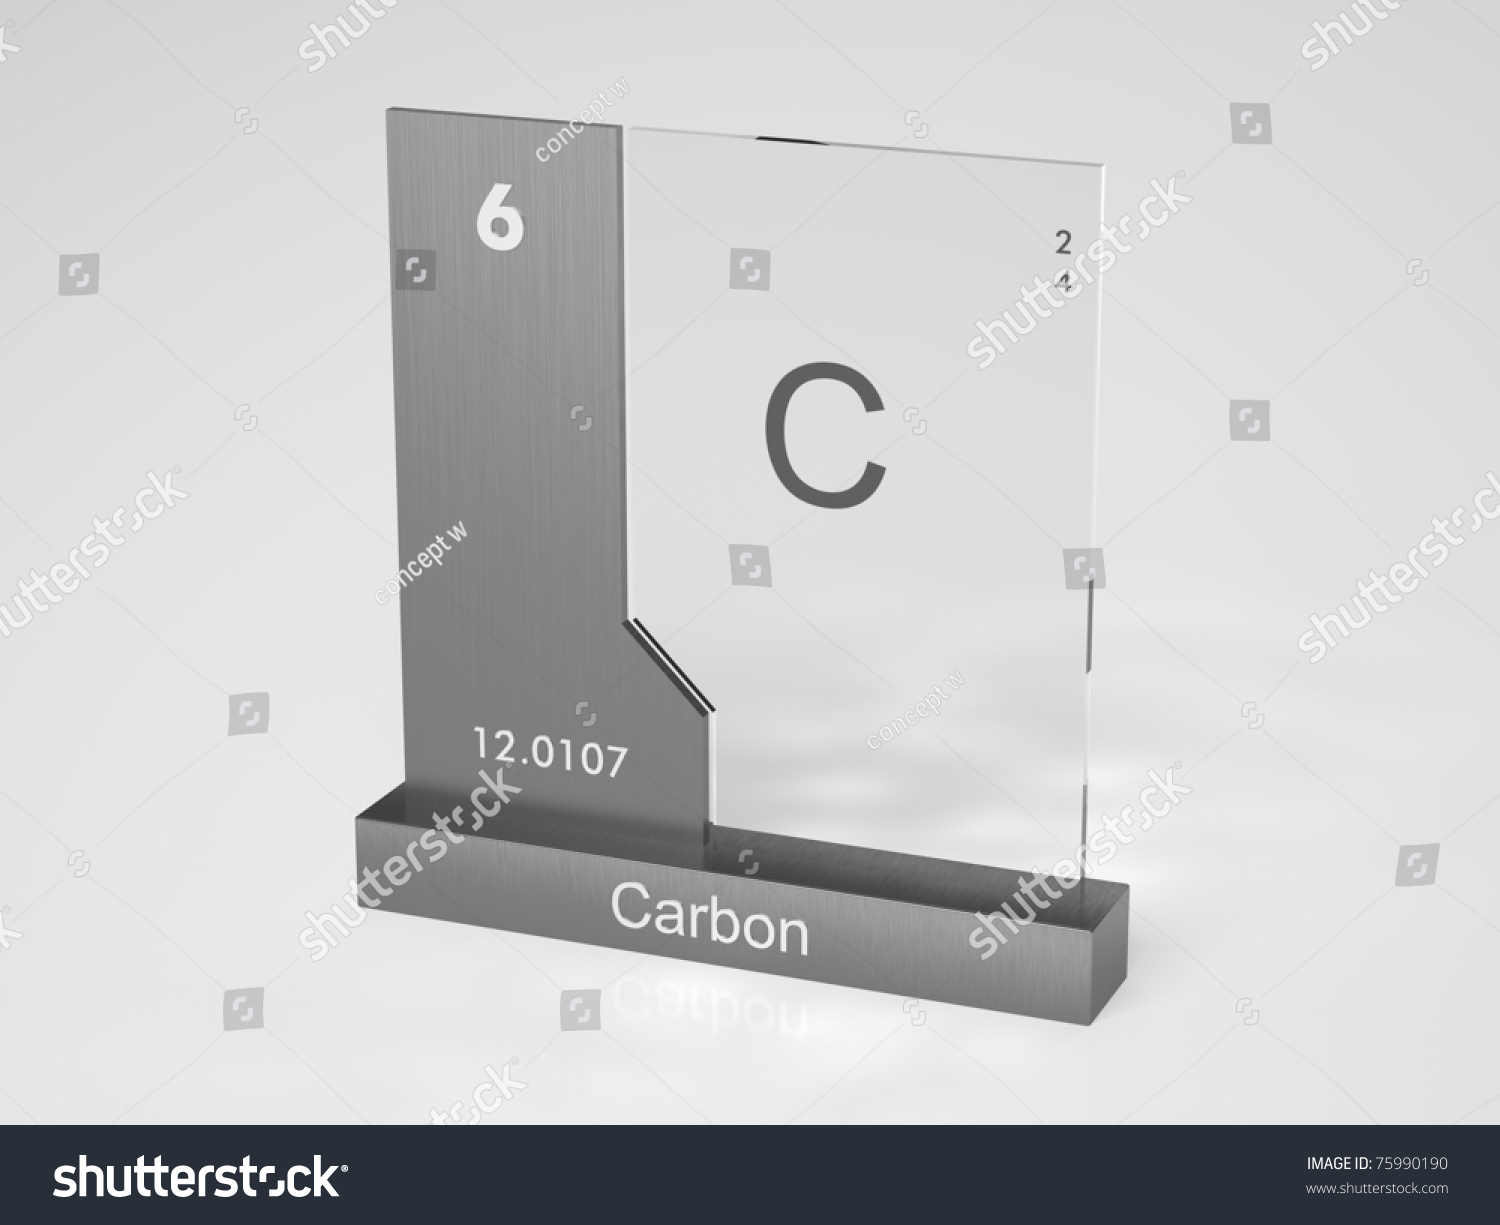 Carbon symbol c chemical element periodic stock illustration carbon symbol c chemical element of the periodic table buycottarizona